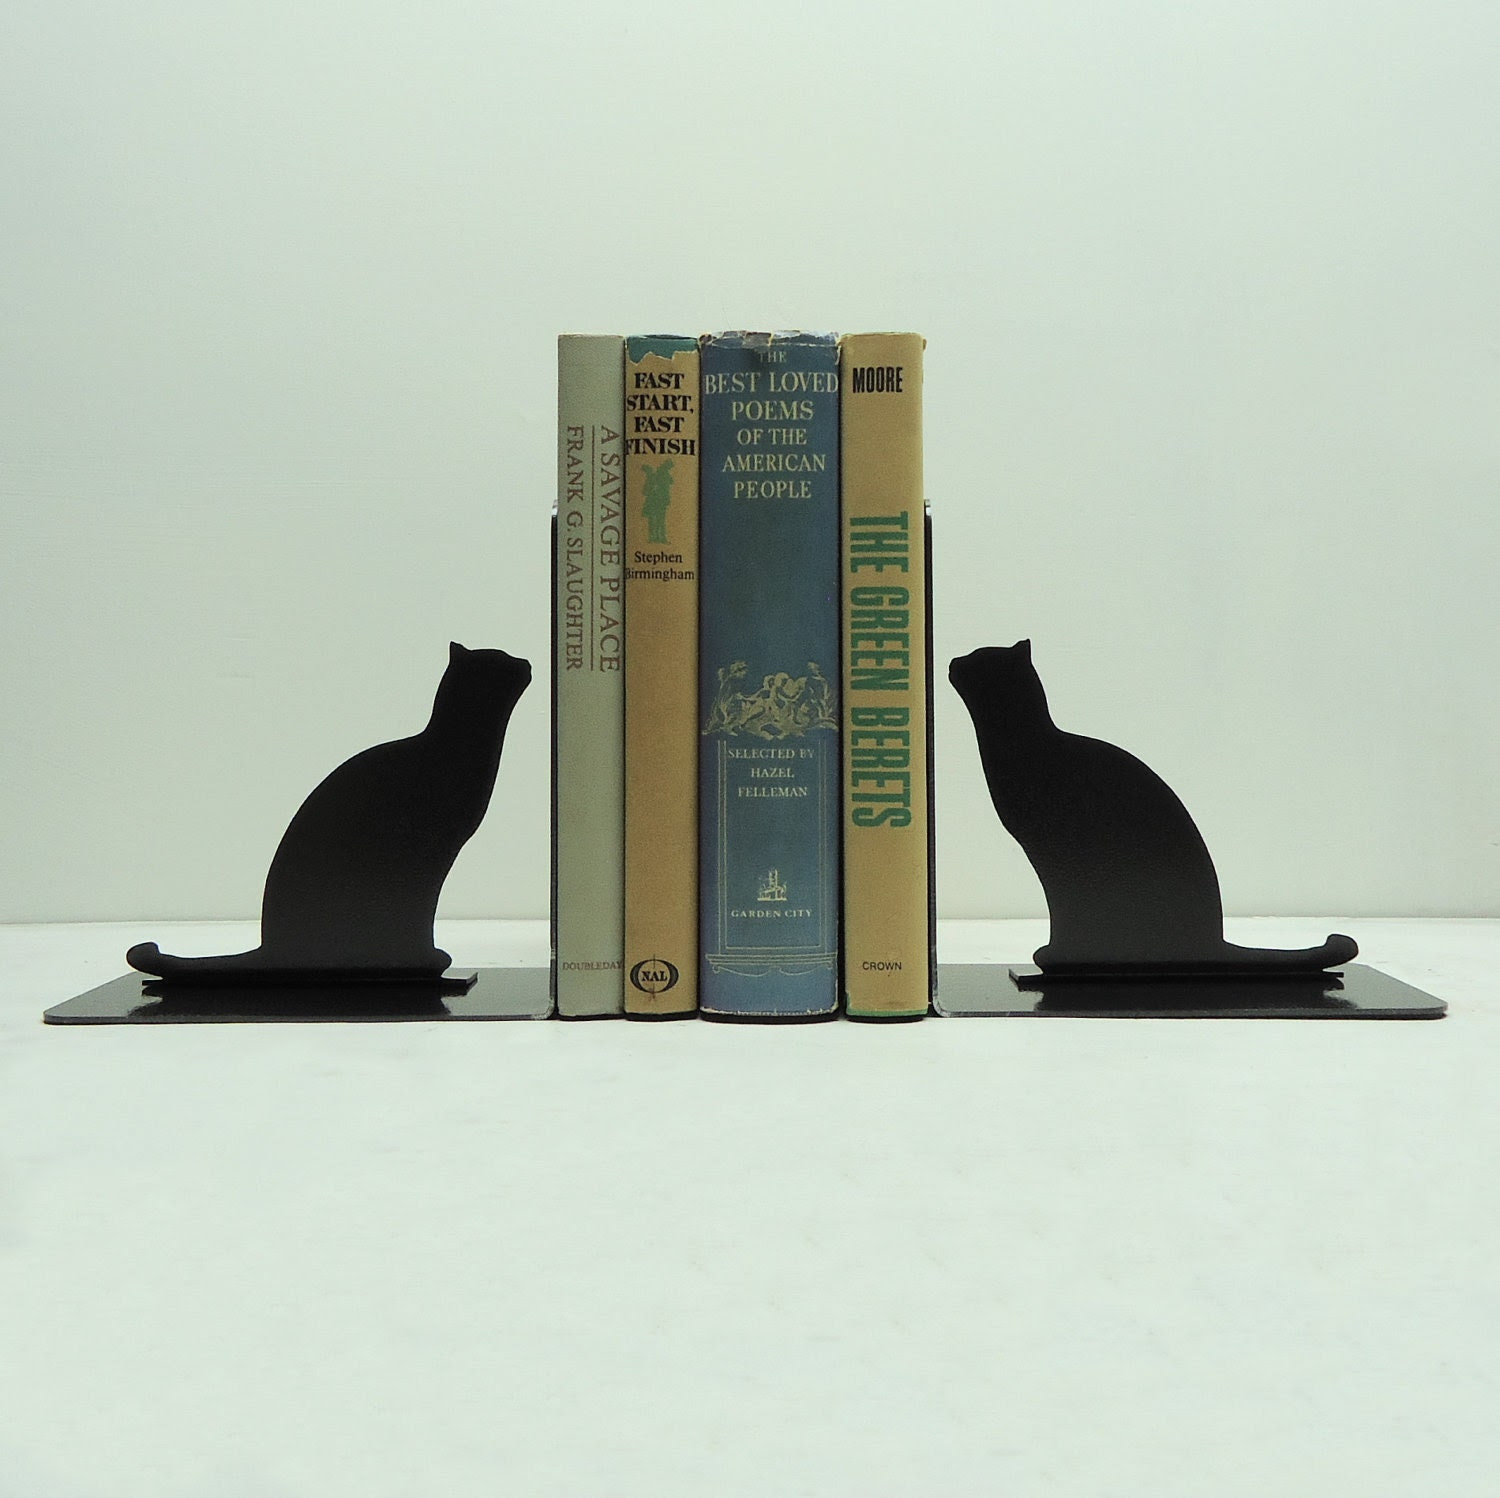 Cat Metal Art Bookends - Free USA Shipping - KnobCreekMetalArts